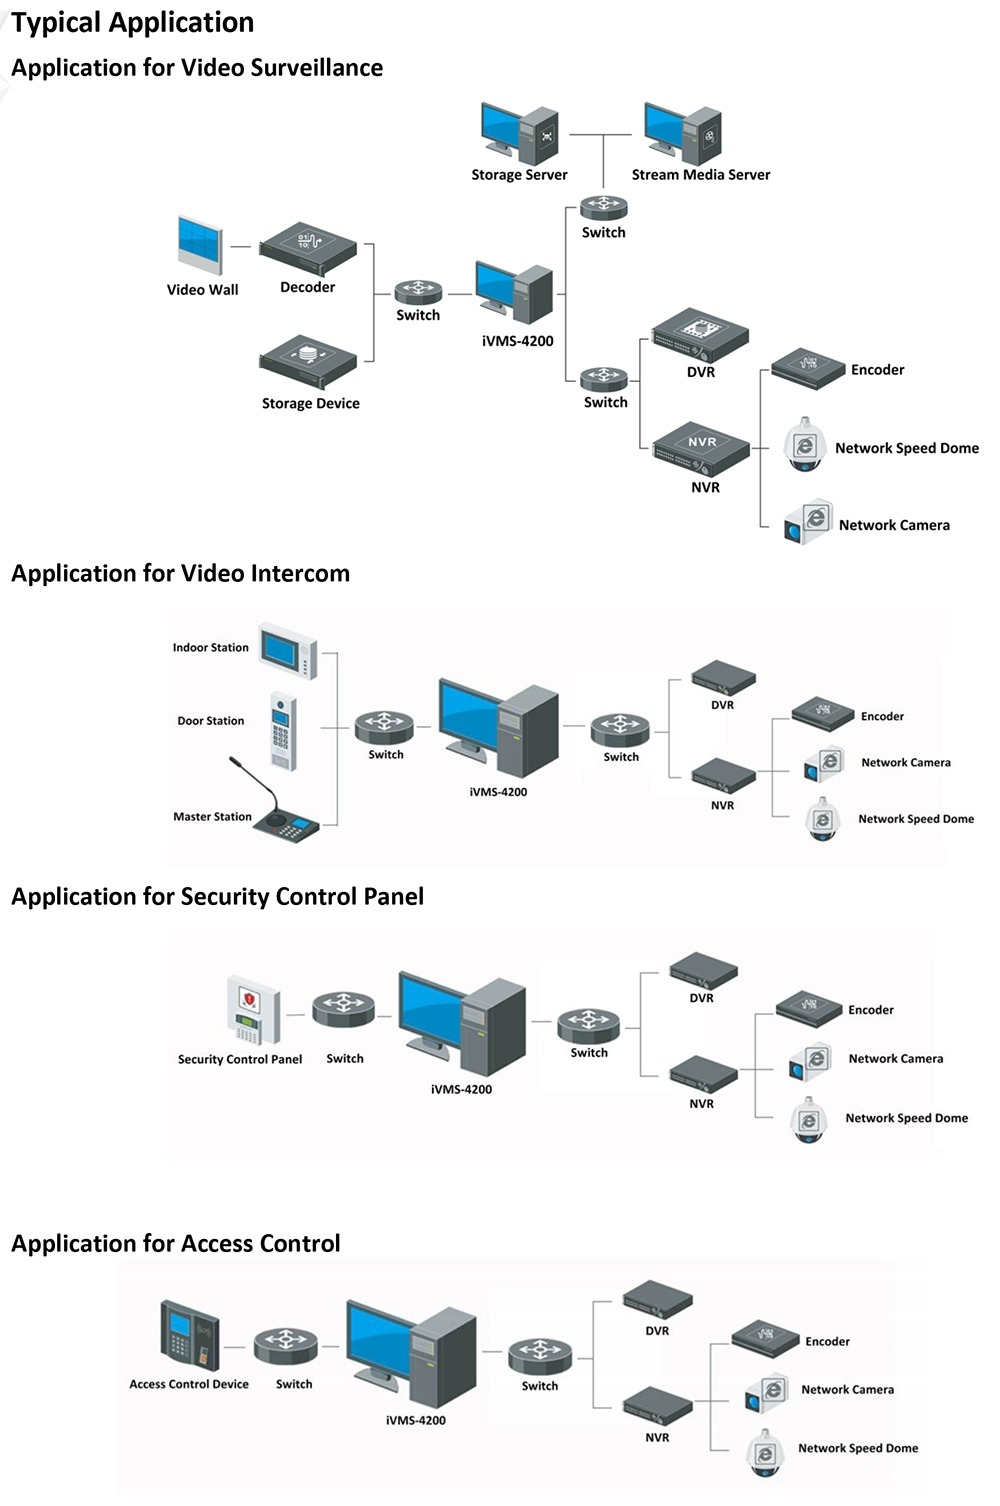 ivms 4200 client download video